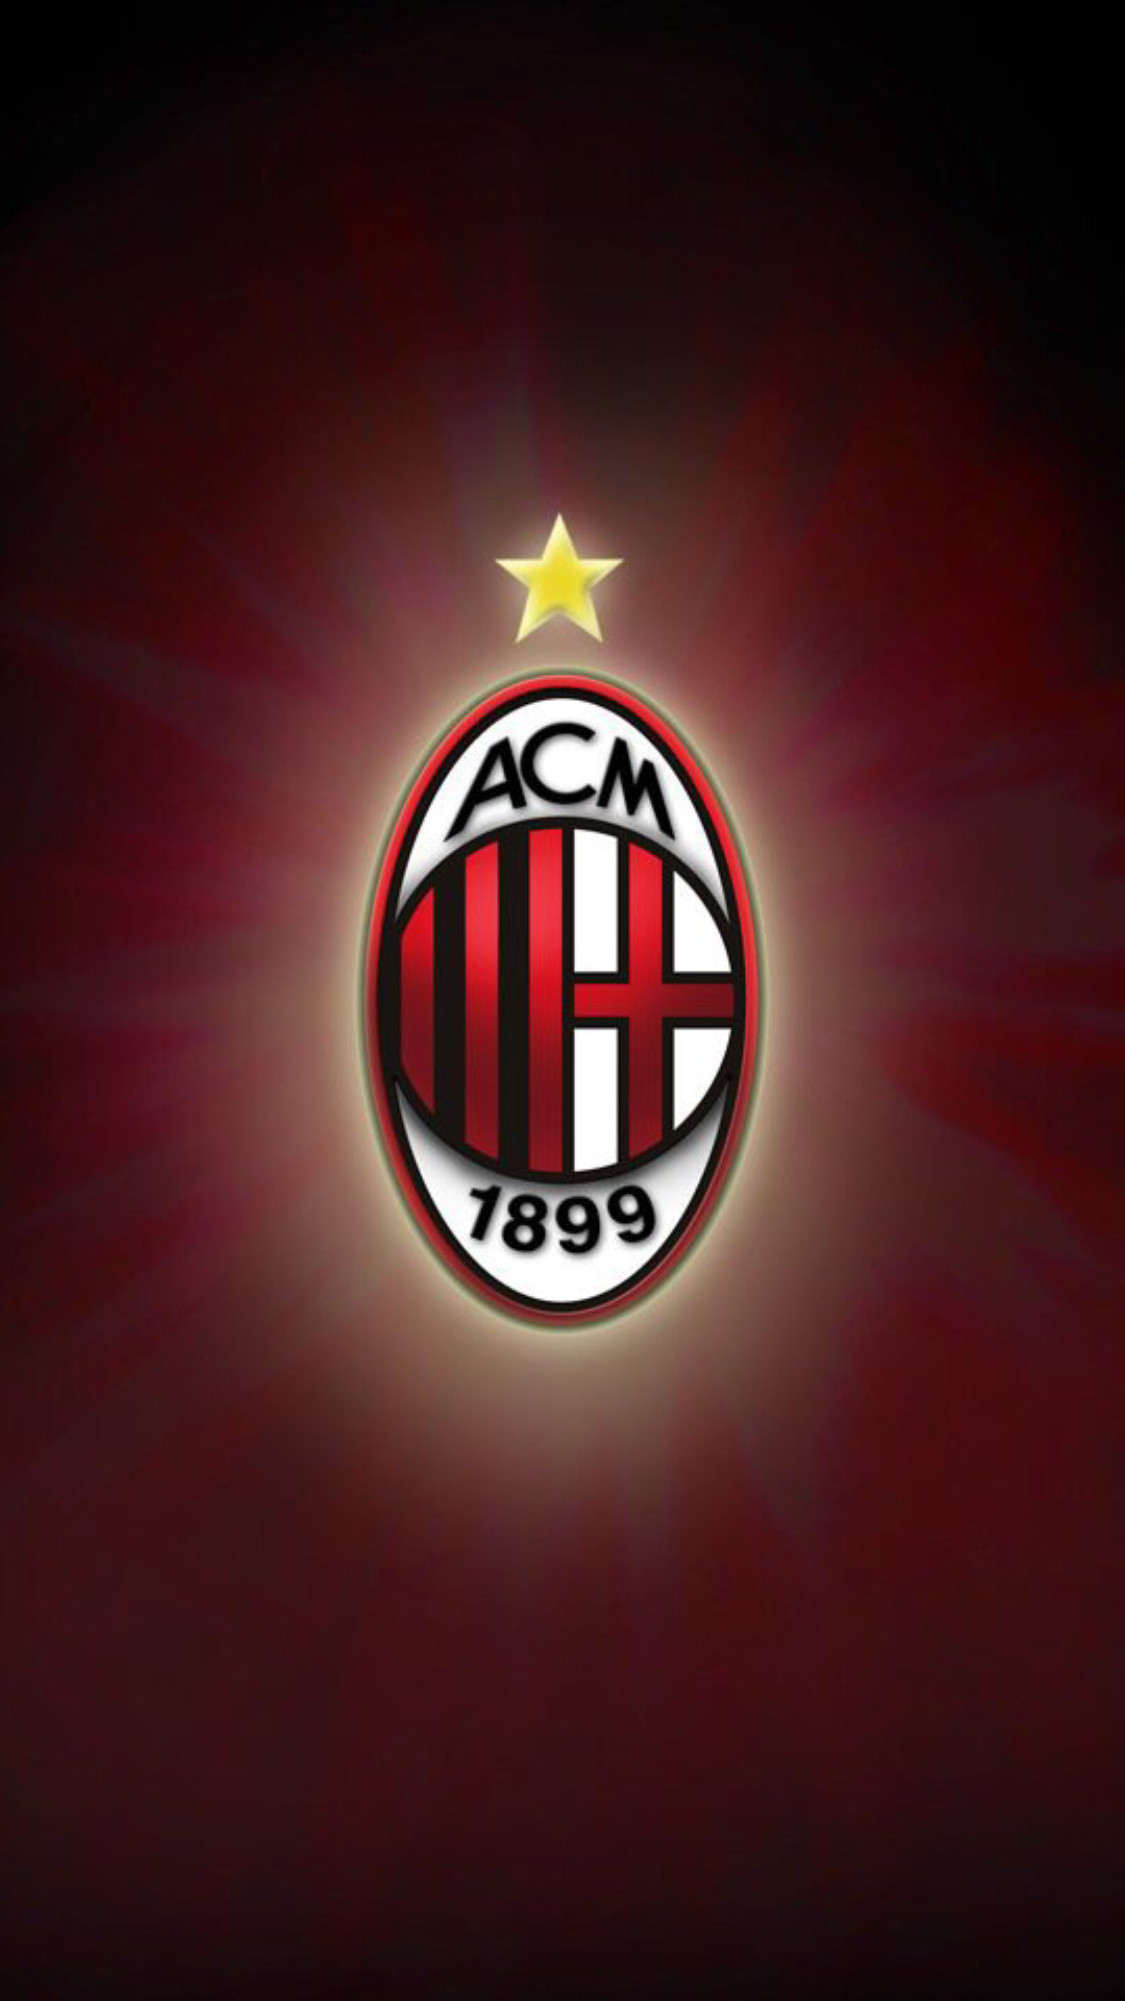 Image Result For Ac Milan Football Club Wallpaper